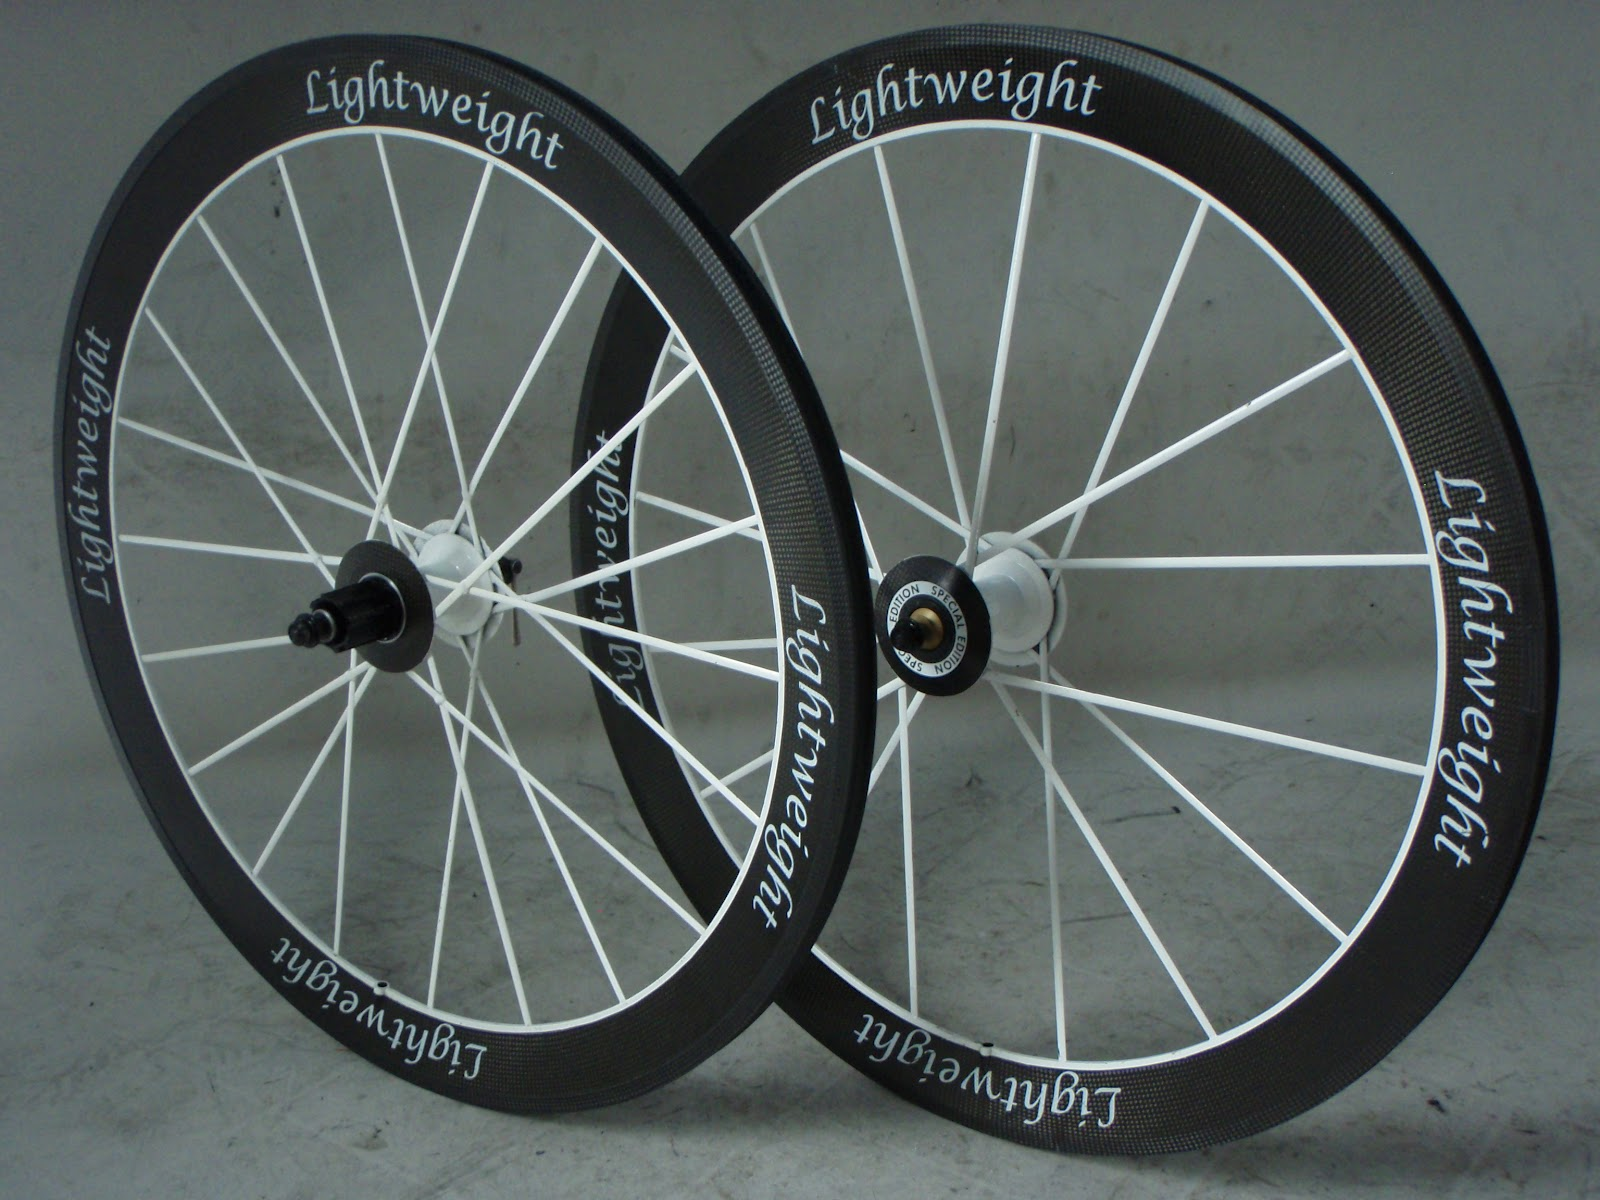 Frame and Wheel Selling Services Lightweight Standard